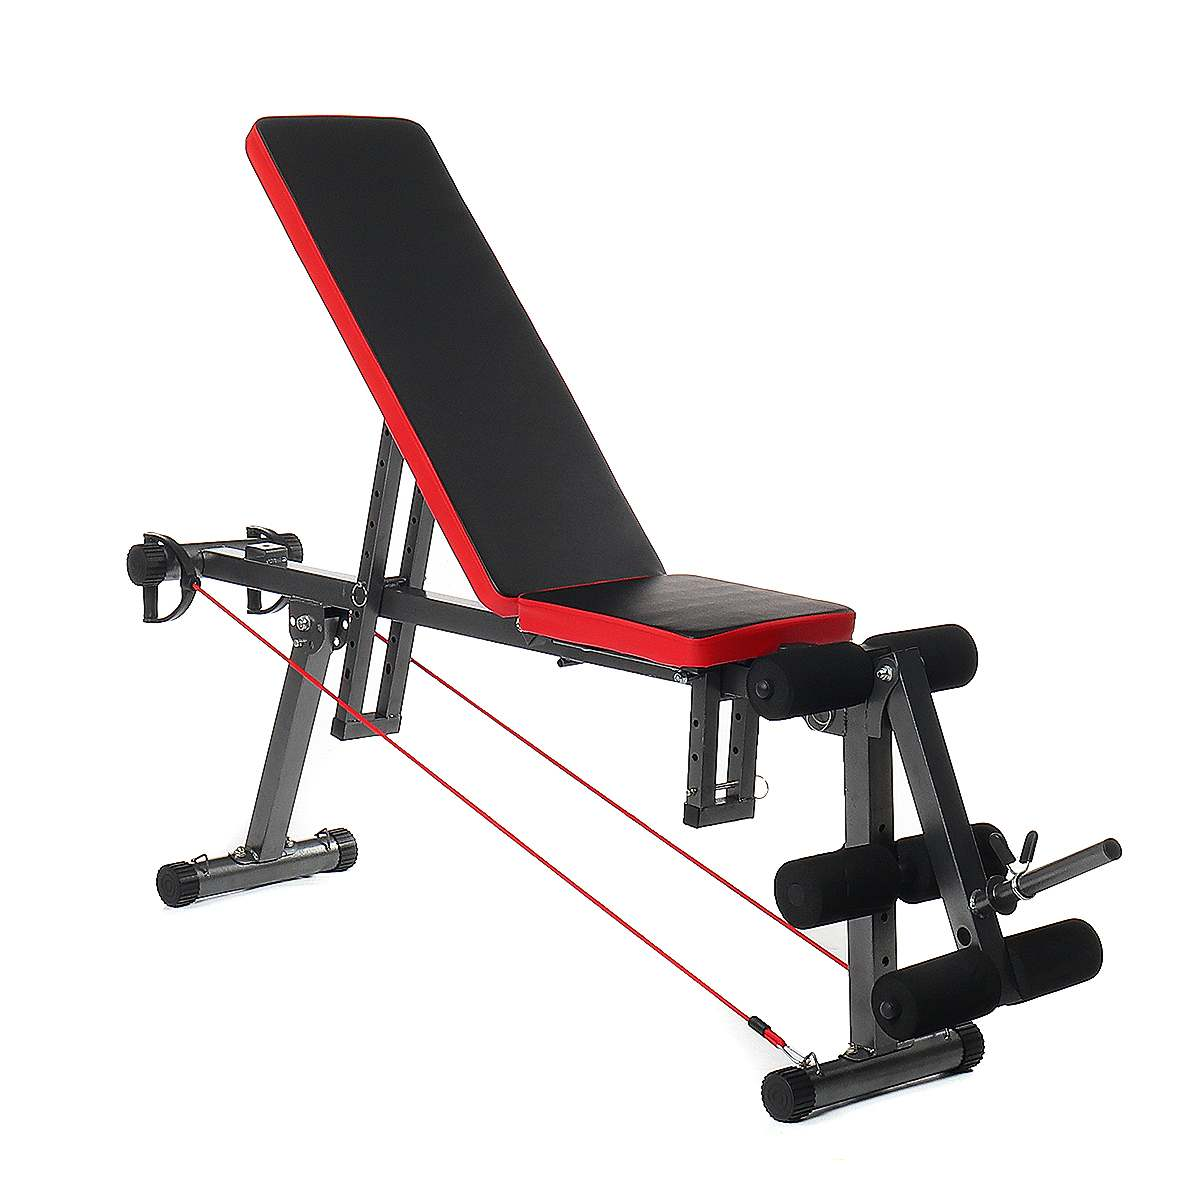 Adjustable Sit Up Bench Multi Position Comfortable Stable Durable Multi Functional Steel Fitness Workout Bench Weight Benches Aliexpress